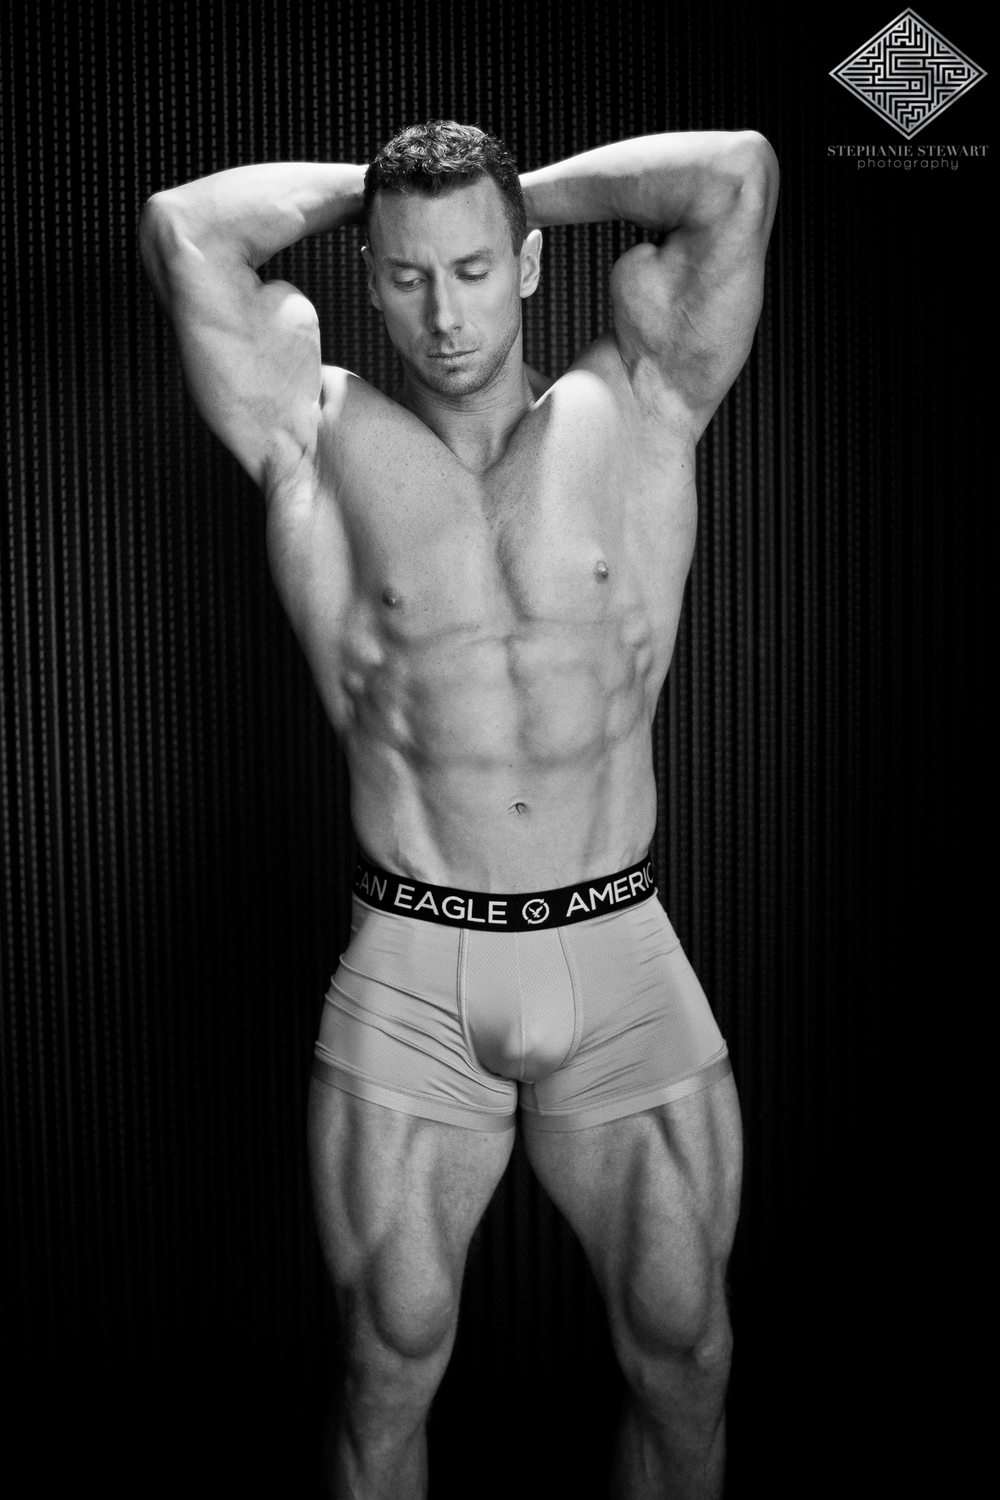 Mens-Fitness-Physique-Military-Shirtless-Bodybulider-Albuquerque-505-Stephanie-Stewart-Photography